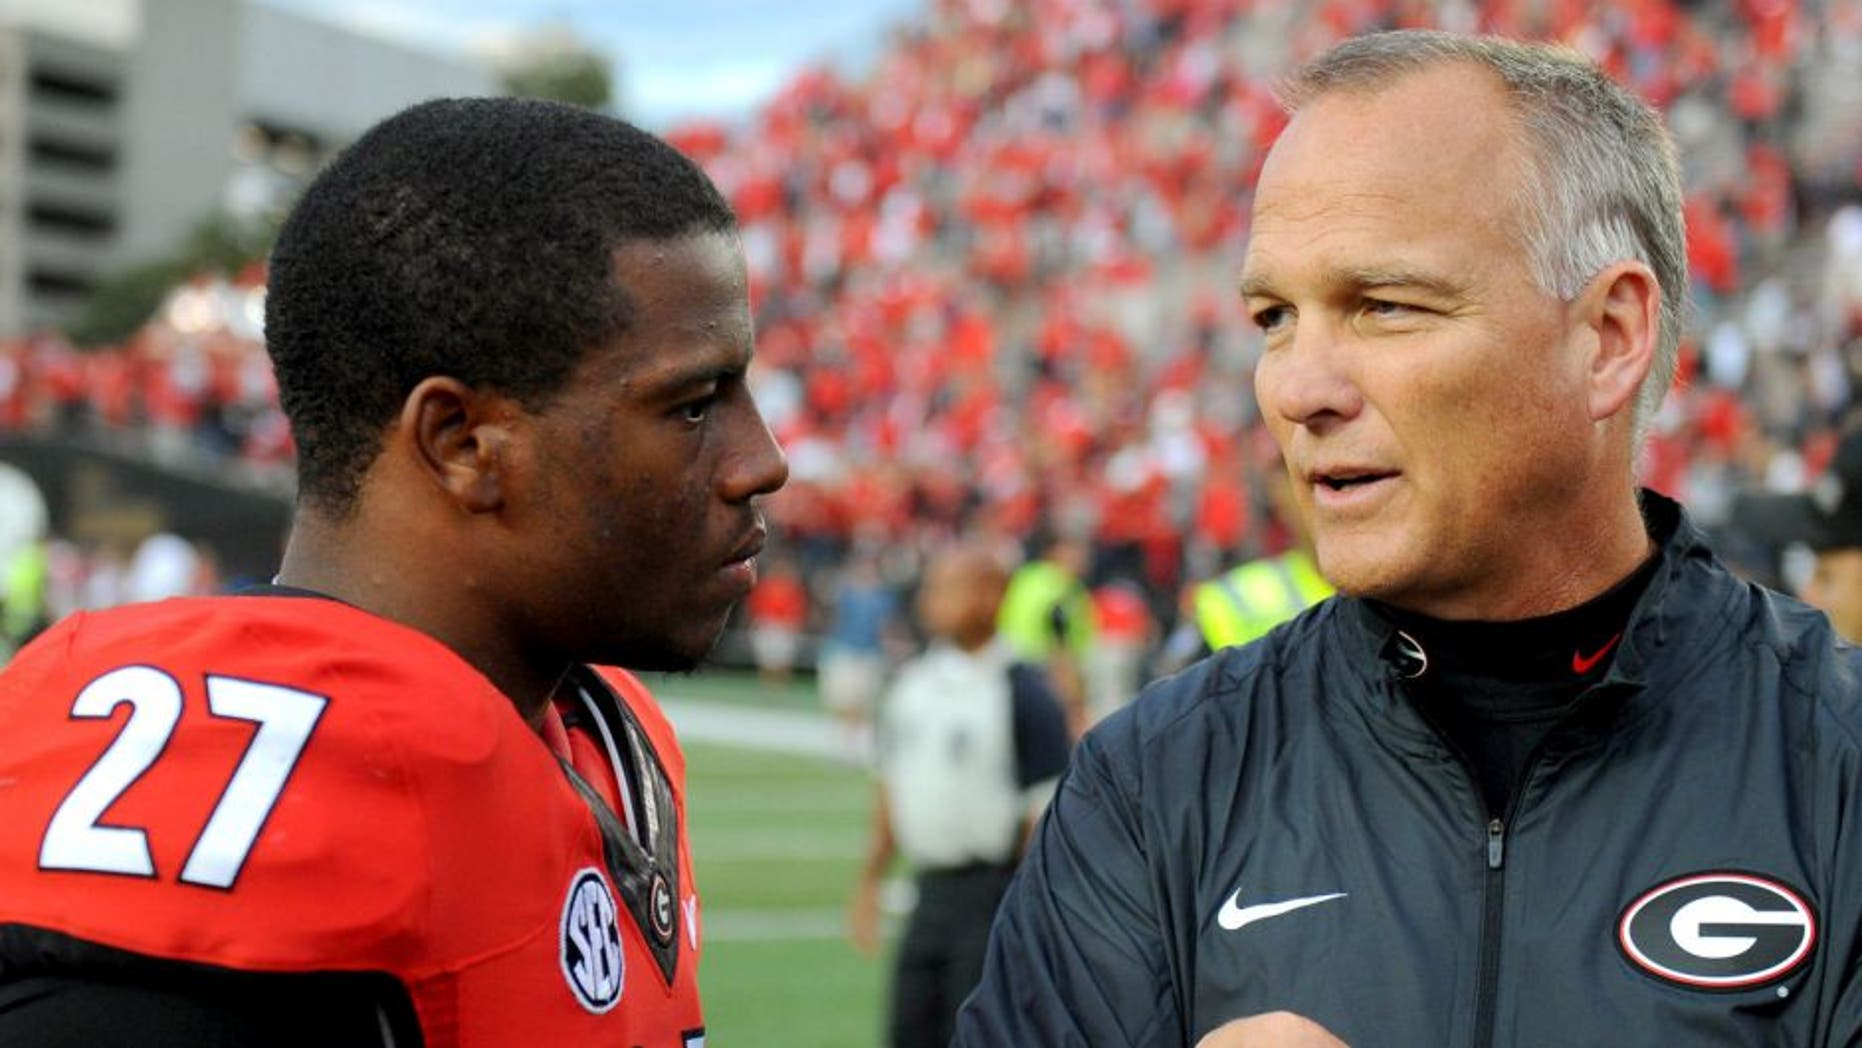 Sep 12, 2015; Nashville, TN, USA; Georgia Bulldogs running back Nick Chubb (27) talks with Georgia Bulldogs head coach Mark Richt after a win against the Vanderbilt Commodores at Vanderbilt Stadium. Georgia won 31-14. Mandatory Credit: Christopher Hanewinckel-USA TODAY Sports